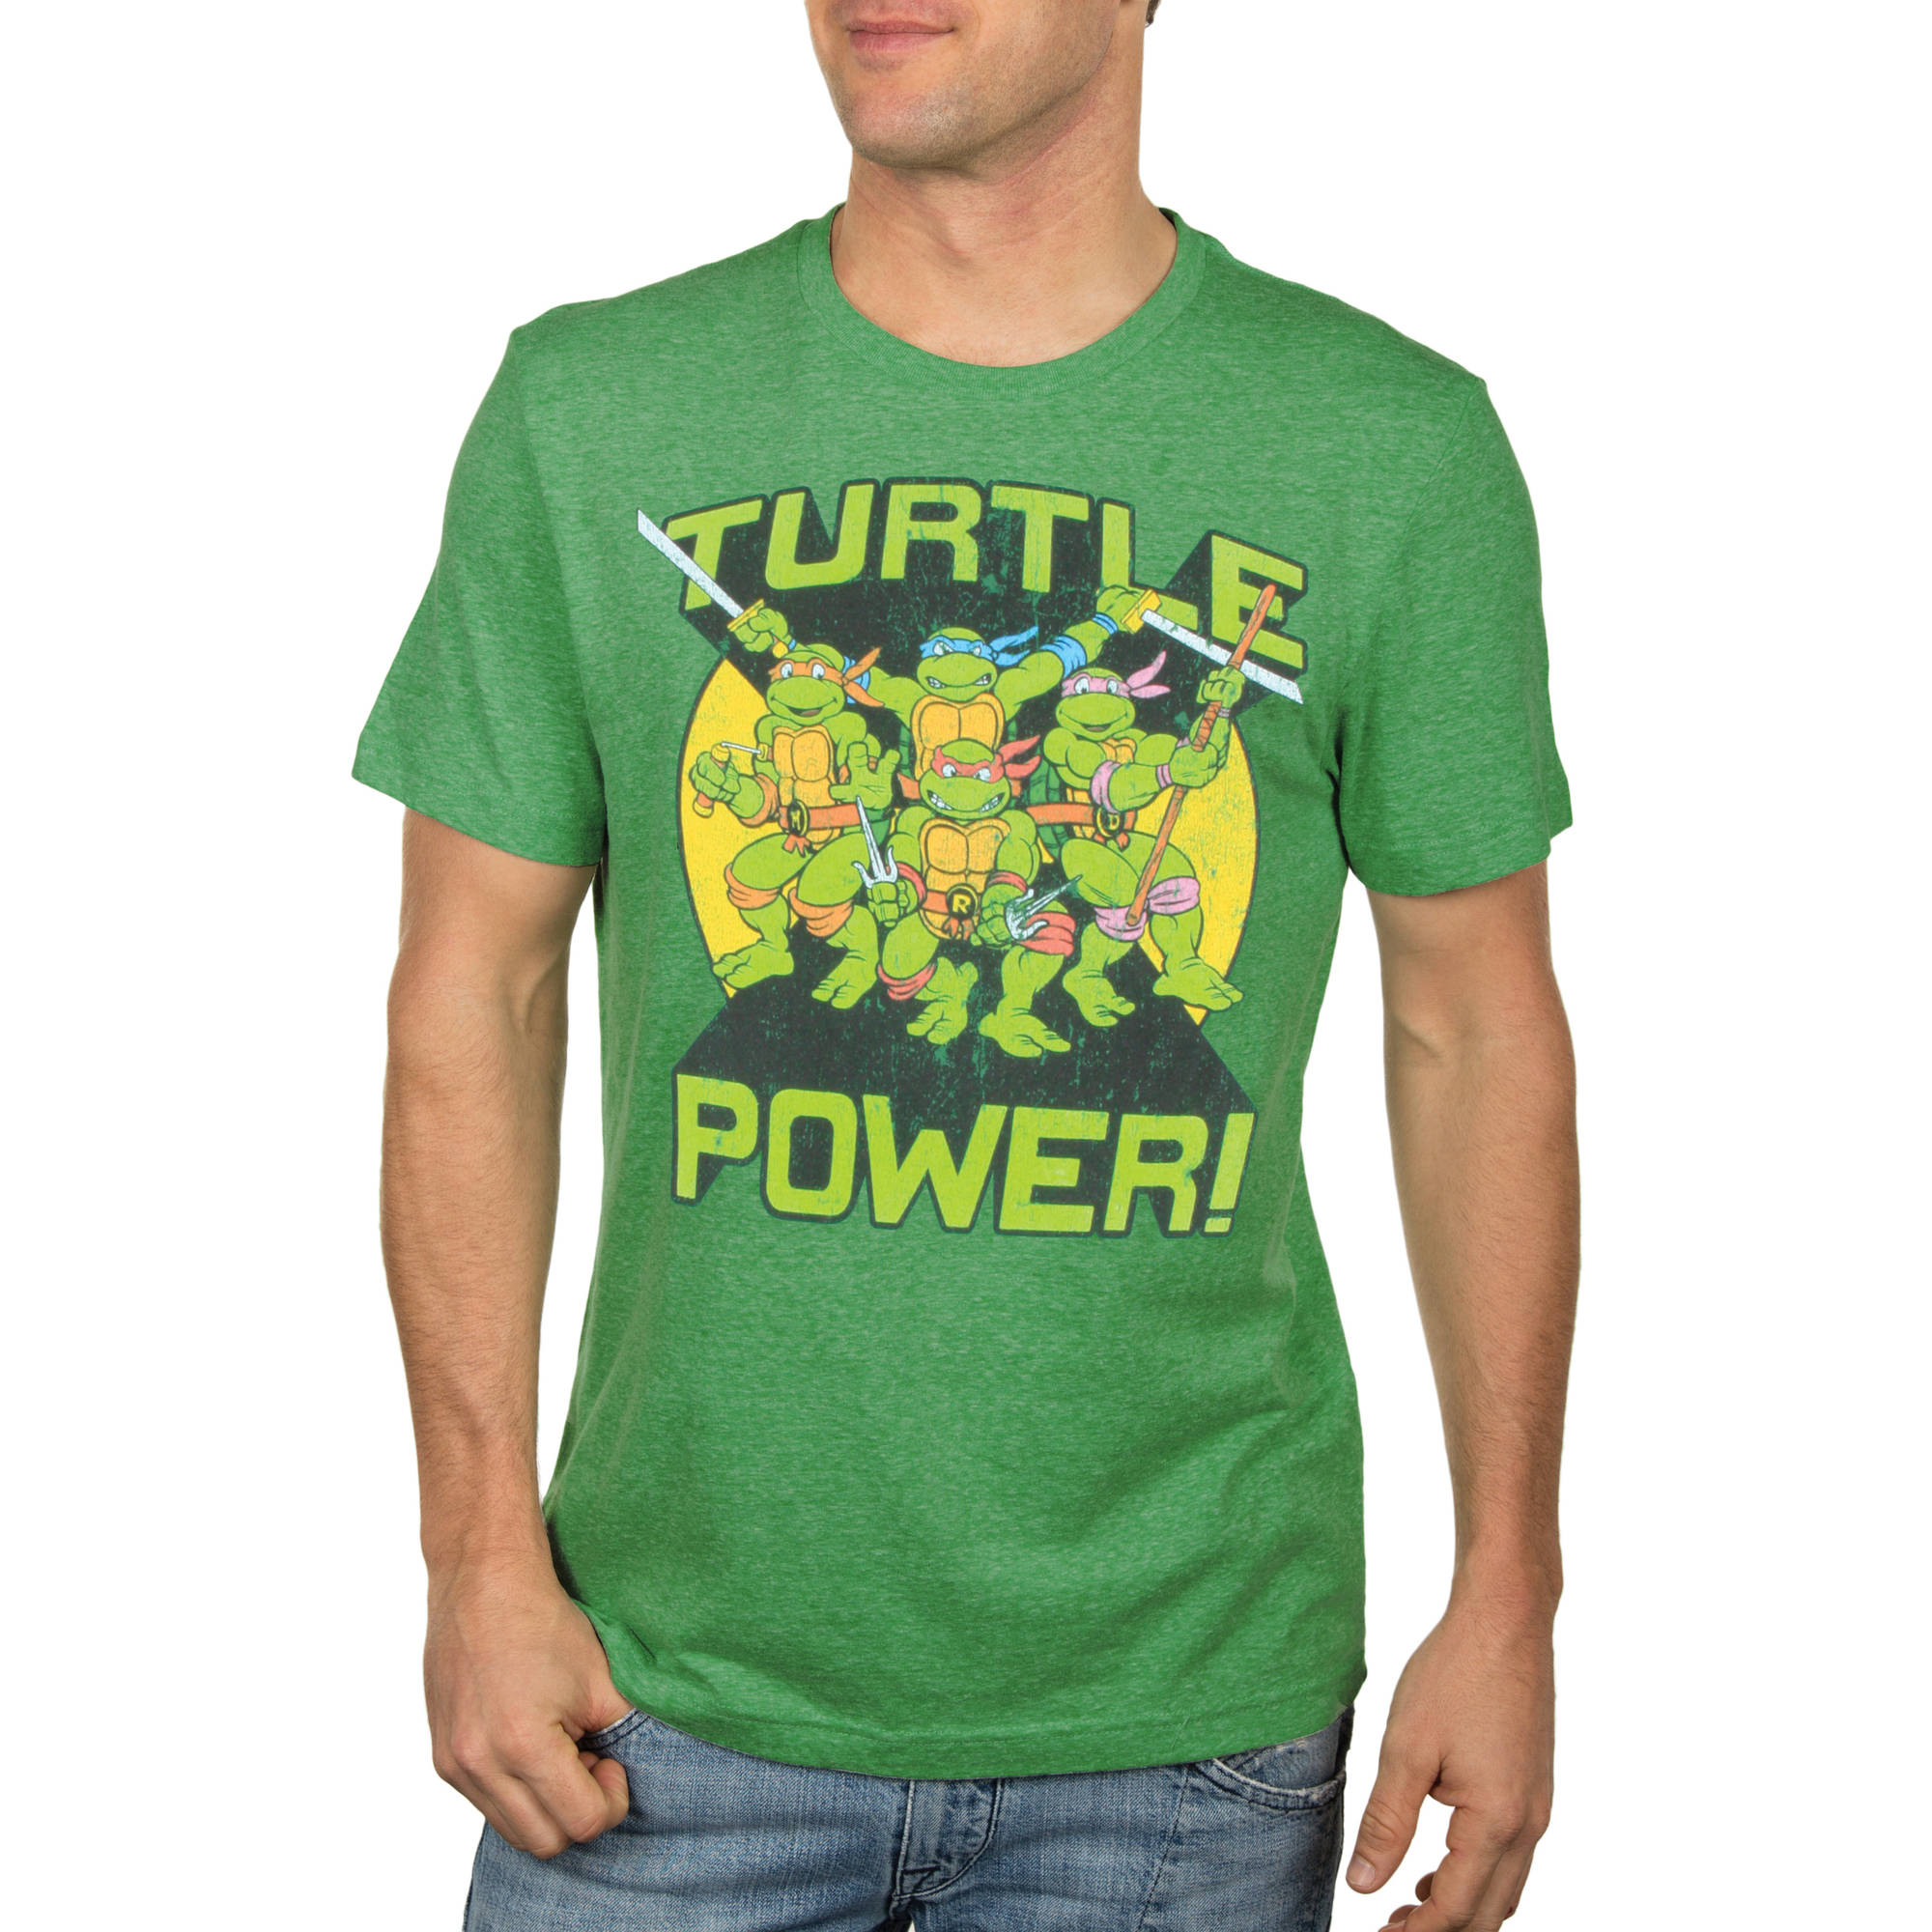 Teenage Mutant Ninja Turtle Turtle Power Big Men's Graphic Tee